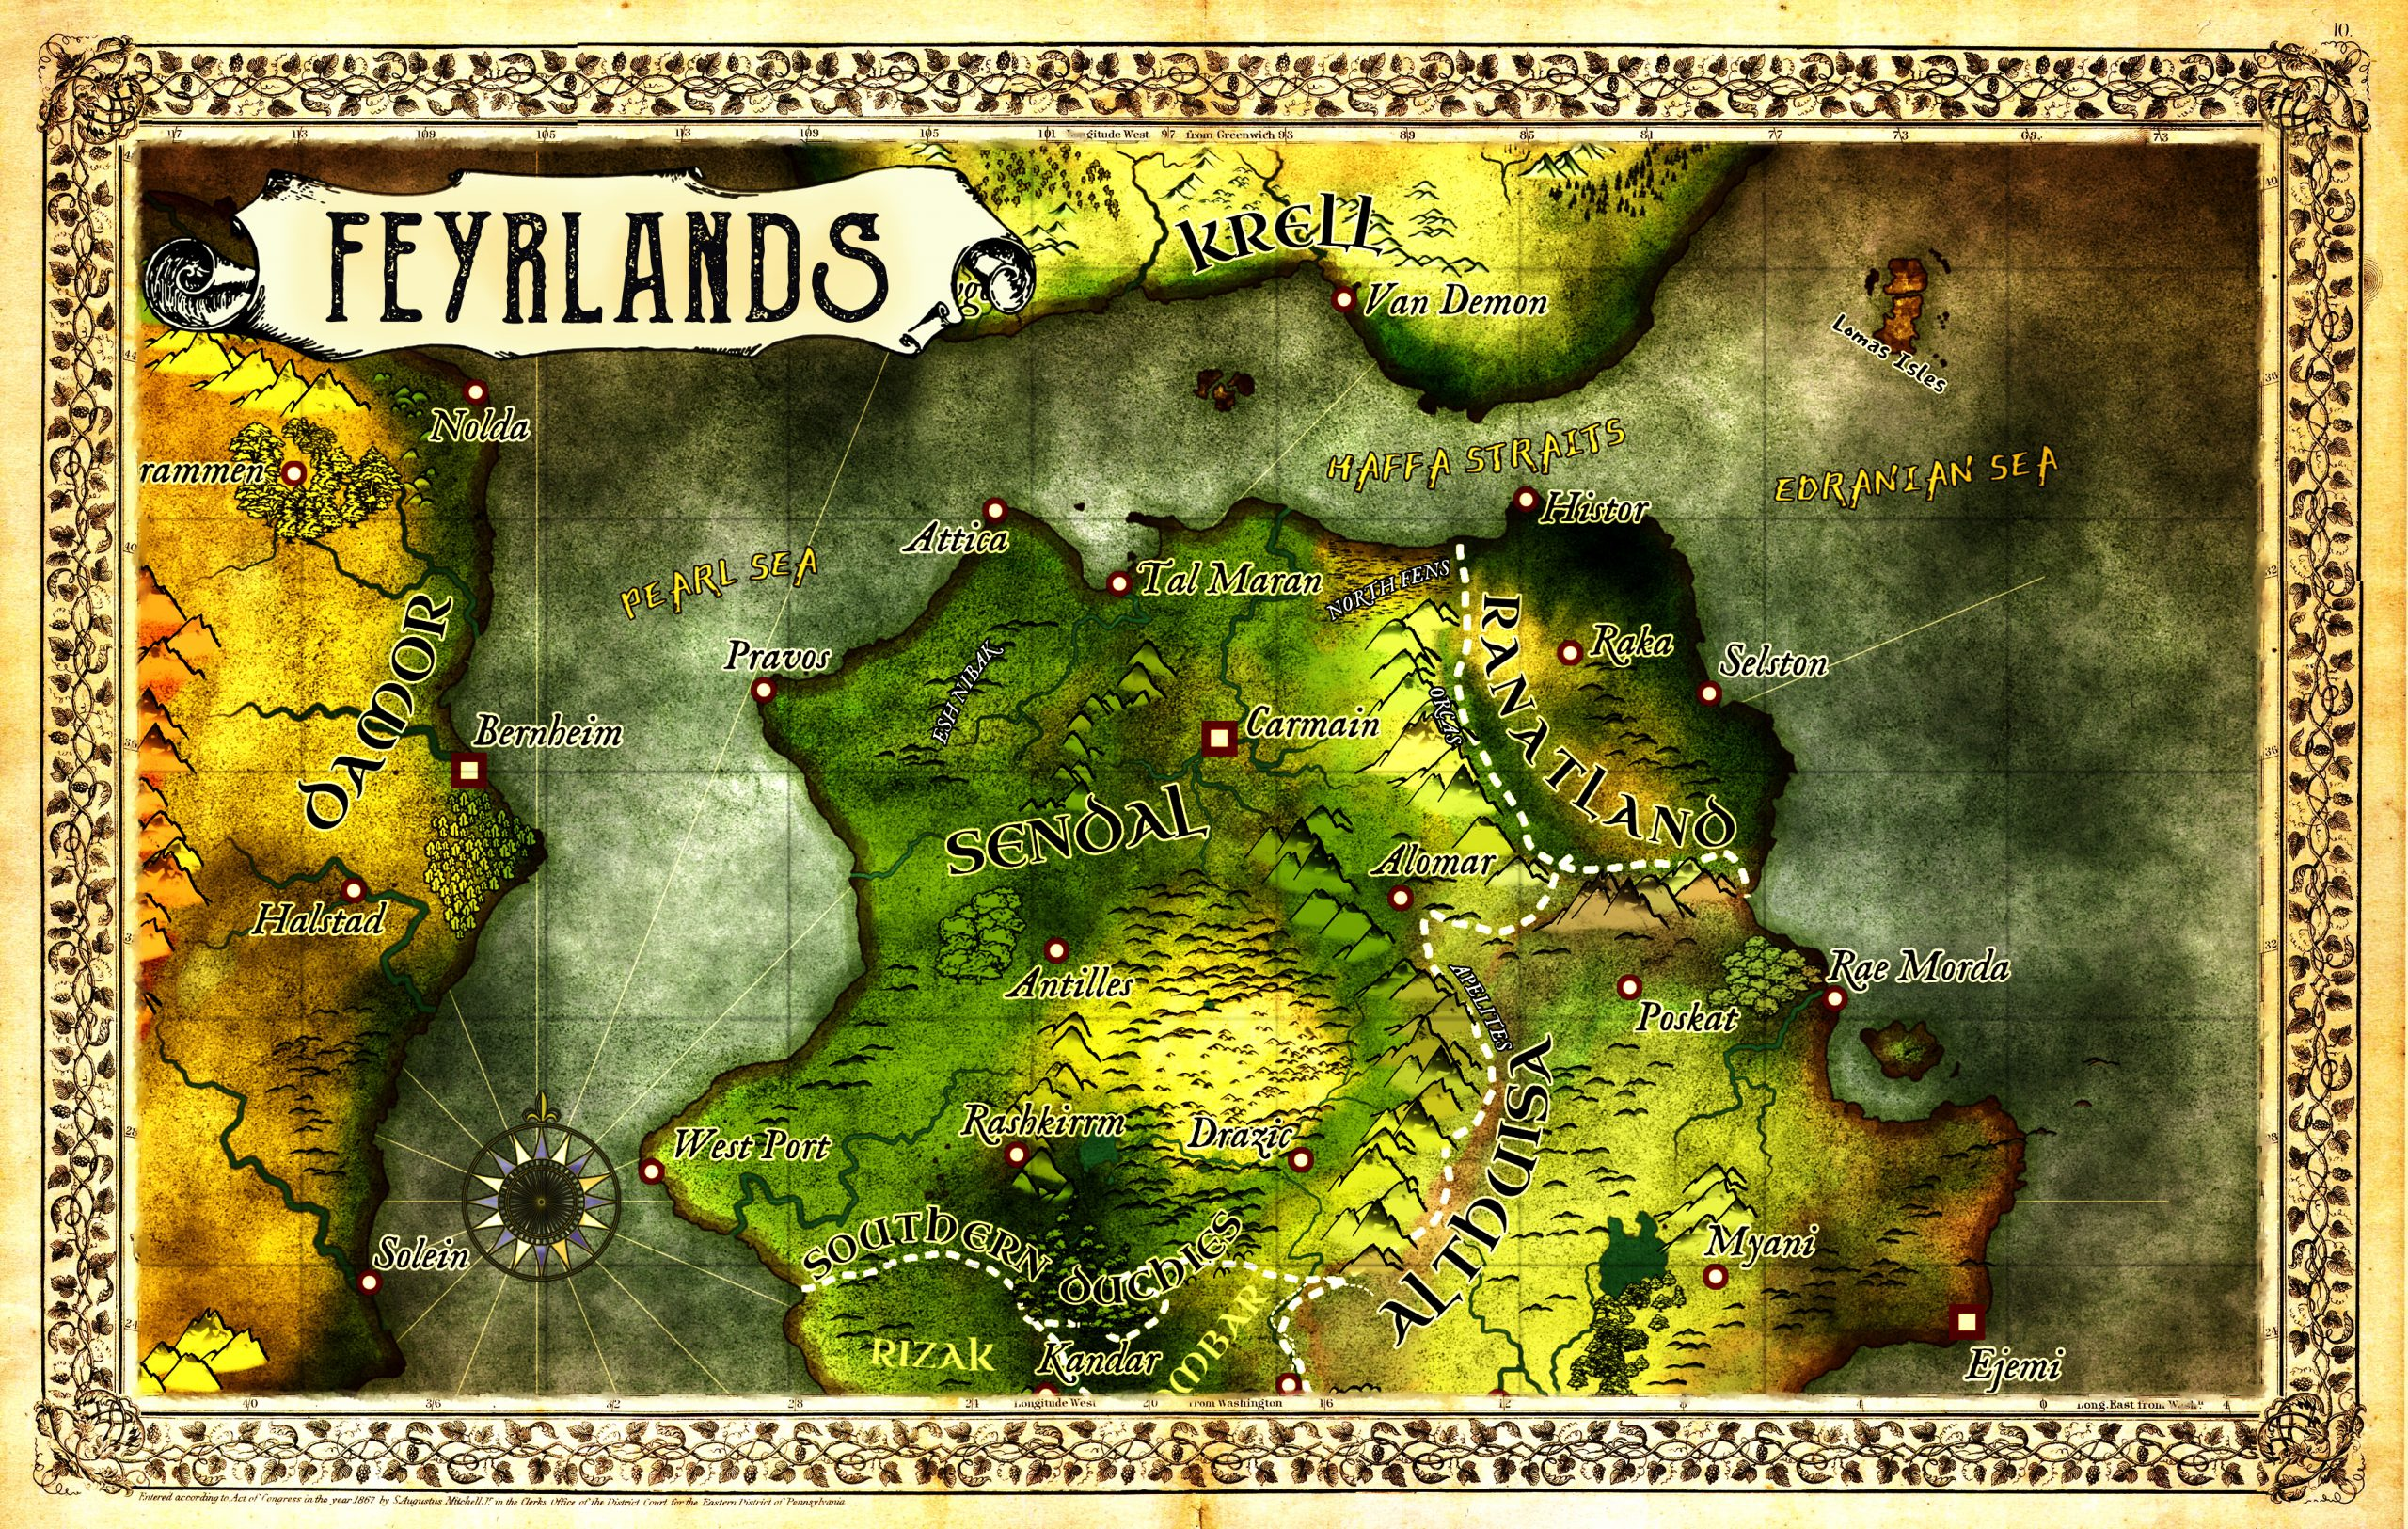 Feyrlands Map